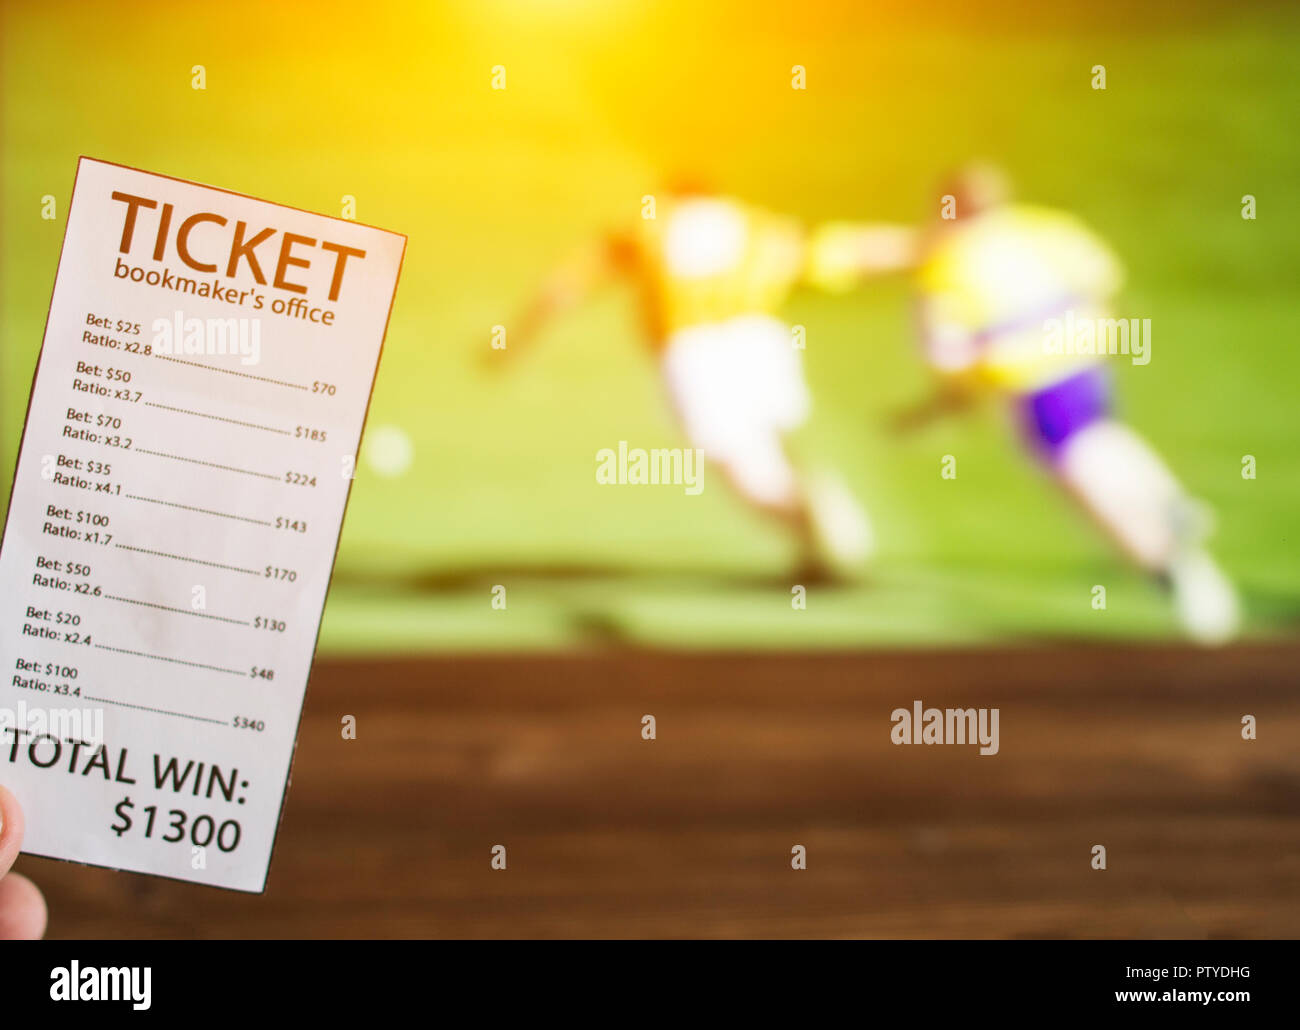 Bookmaker ticket on the background of the TV on which the sport is shown in the game of hurling, sports betting, bookmaker - Stock Image